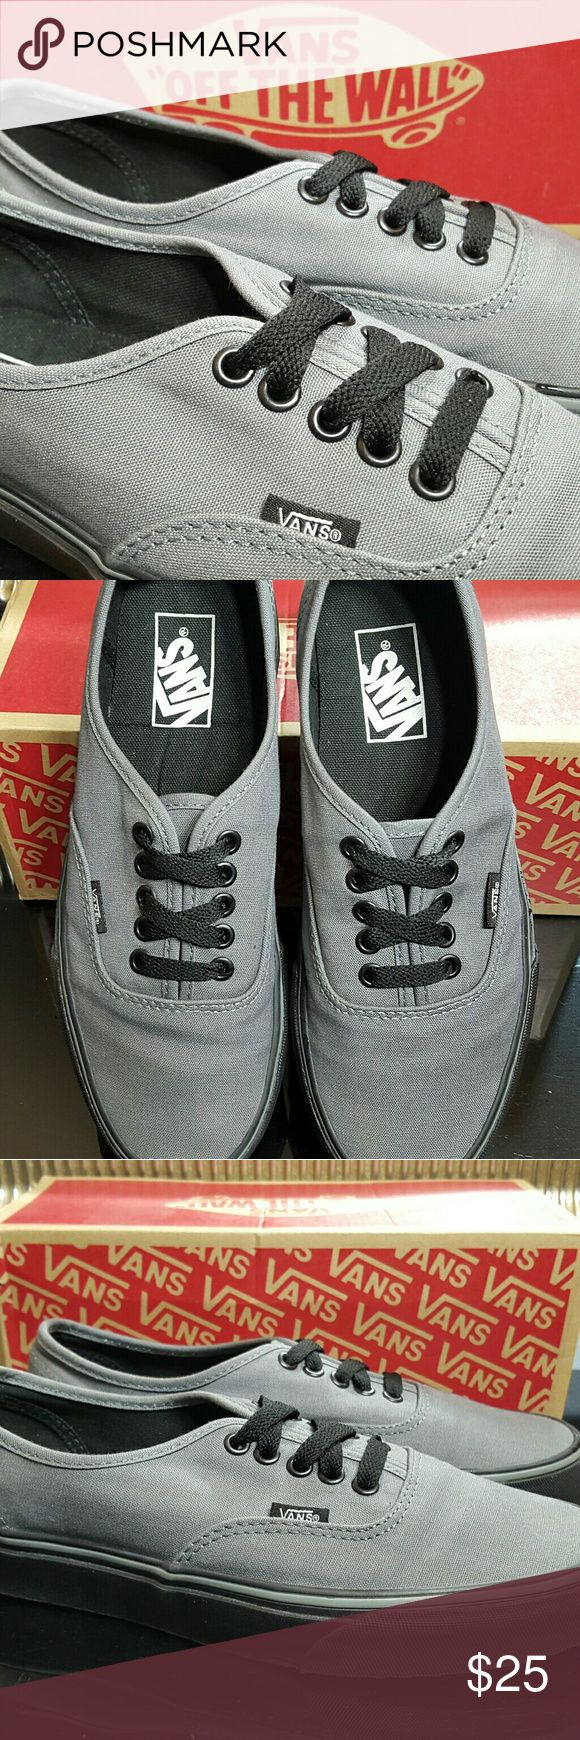 Vans Authentic (Black Sole) Sedona Sage These are like new, barley worn. Comes with the original box. Vans Shoes Sneakers